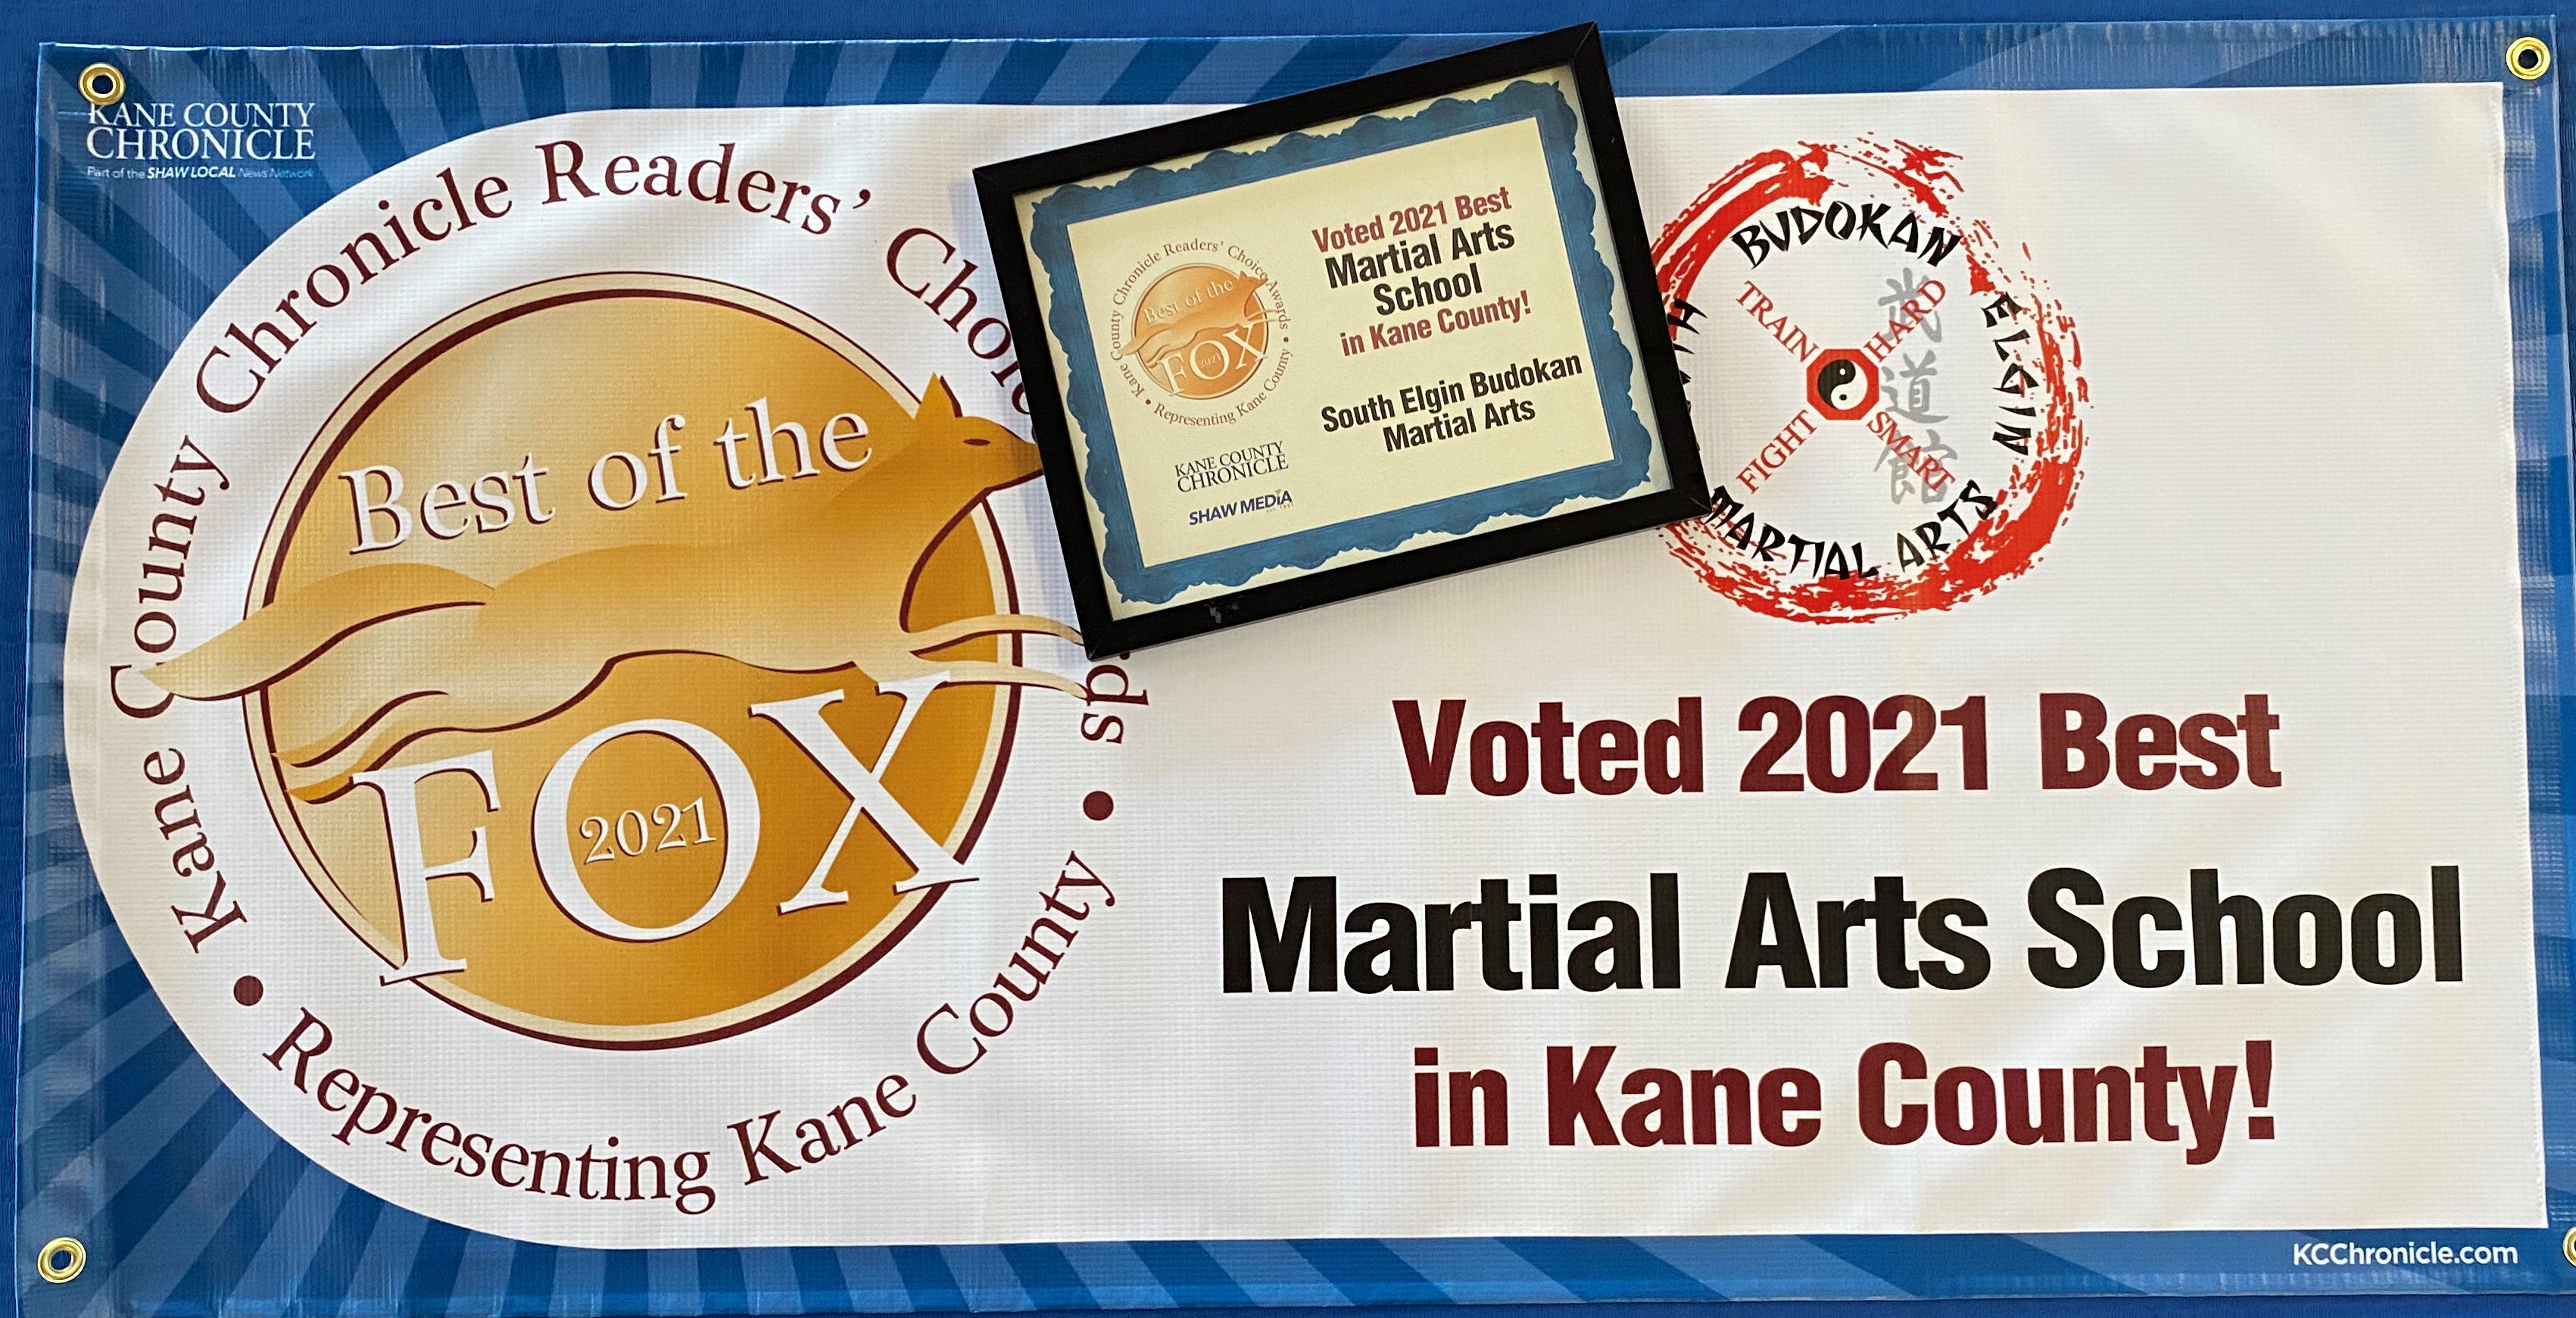 2021 – Kane County Reader's Choice - One of the BEST Martial Arts schools in Kane County!